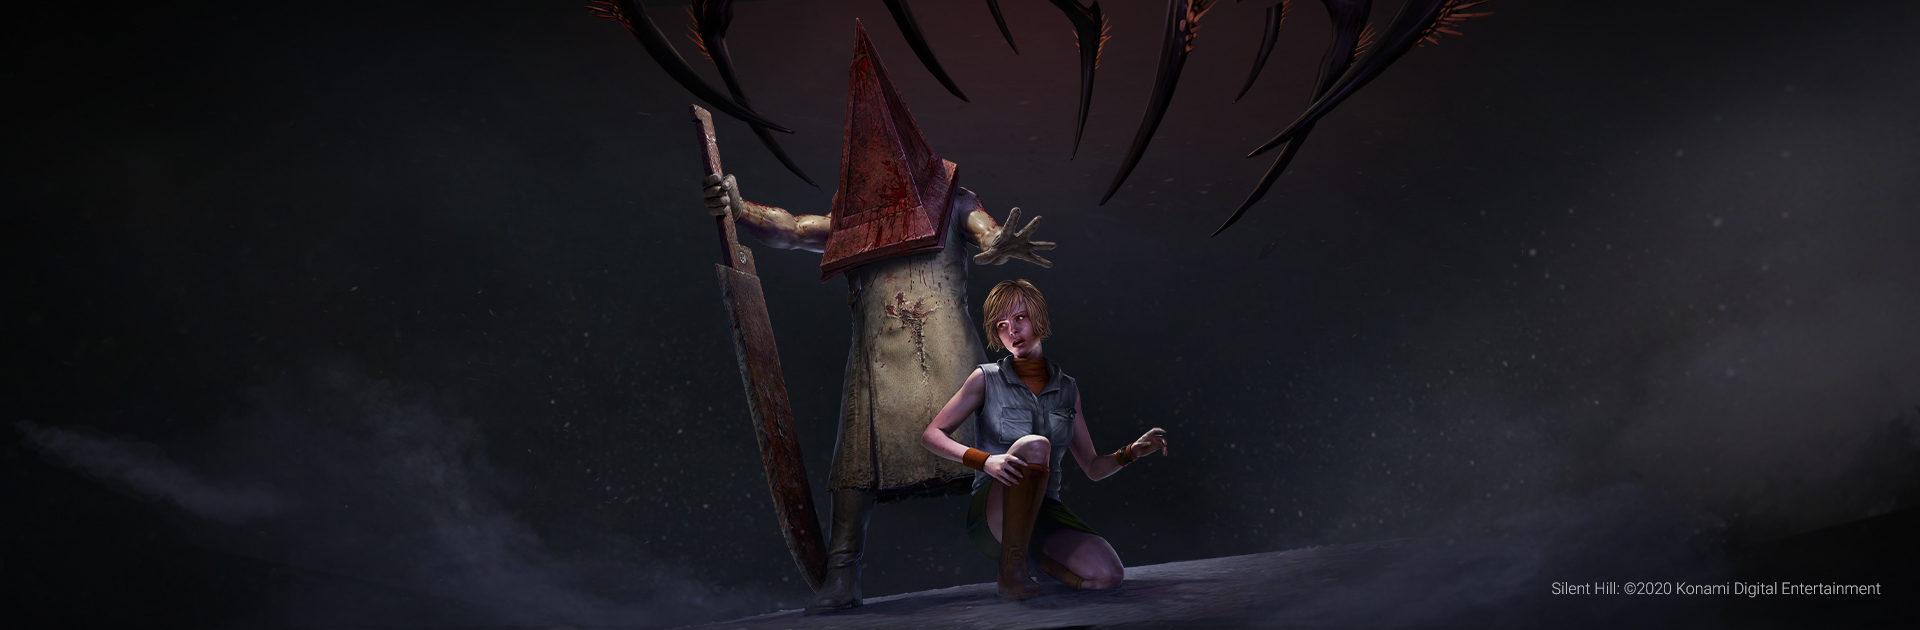 Dead by Daylight™'s Newest Chapter, Silent Hill, Launches on PC and Consoles